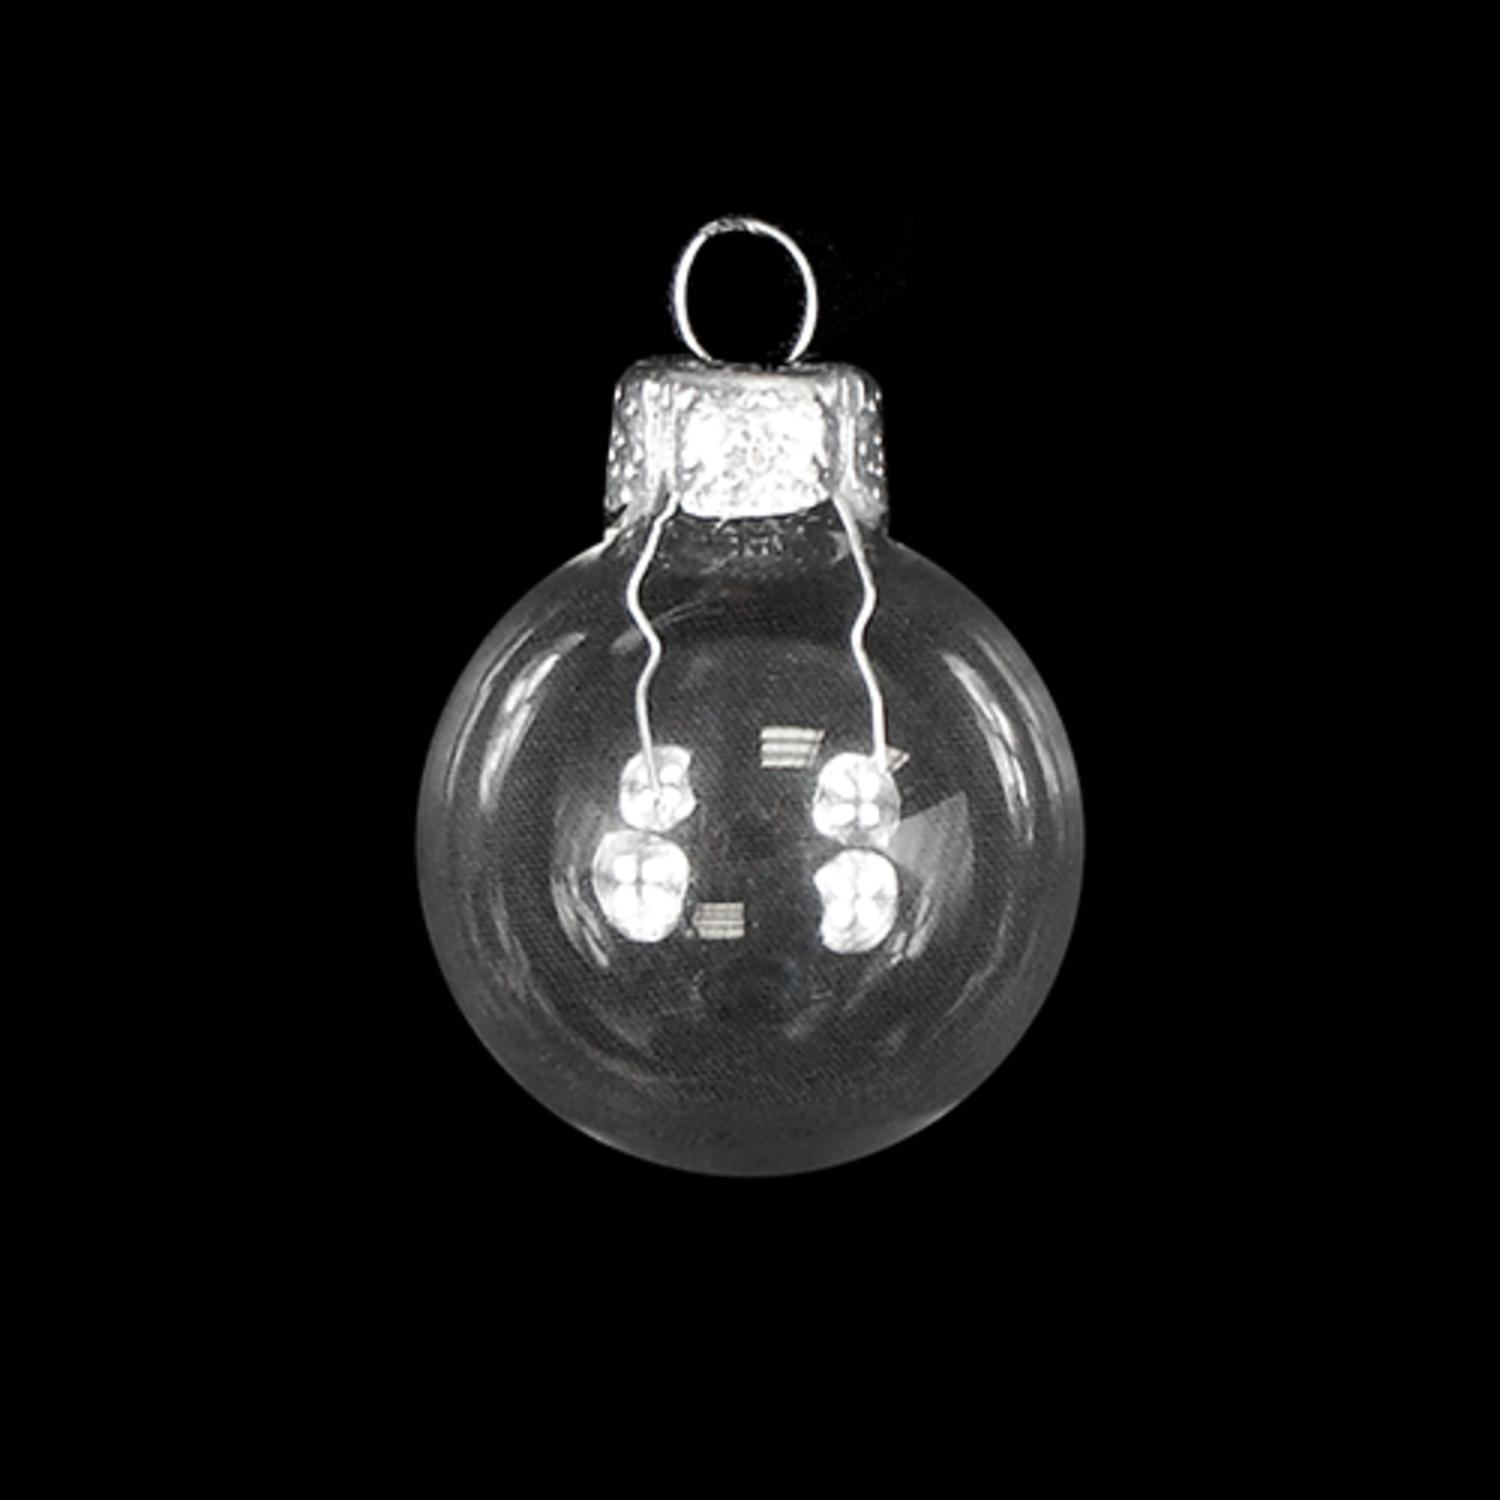 40ct Shiny Clear Transparent Glass Ball Christmas. Christmas Baubles In Bulk Buy. New York Christmas Decorations Start. Homemade Christmas Decorations For The Home. Outdoor Christmas Led Gift Box Decorations. Wooden Christmas Decorations For Outside. Decorative Christmas Tree Ladder. Large Outdoor Christmas Decorations Diy. Christmas Tree Decorations Family